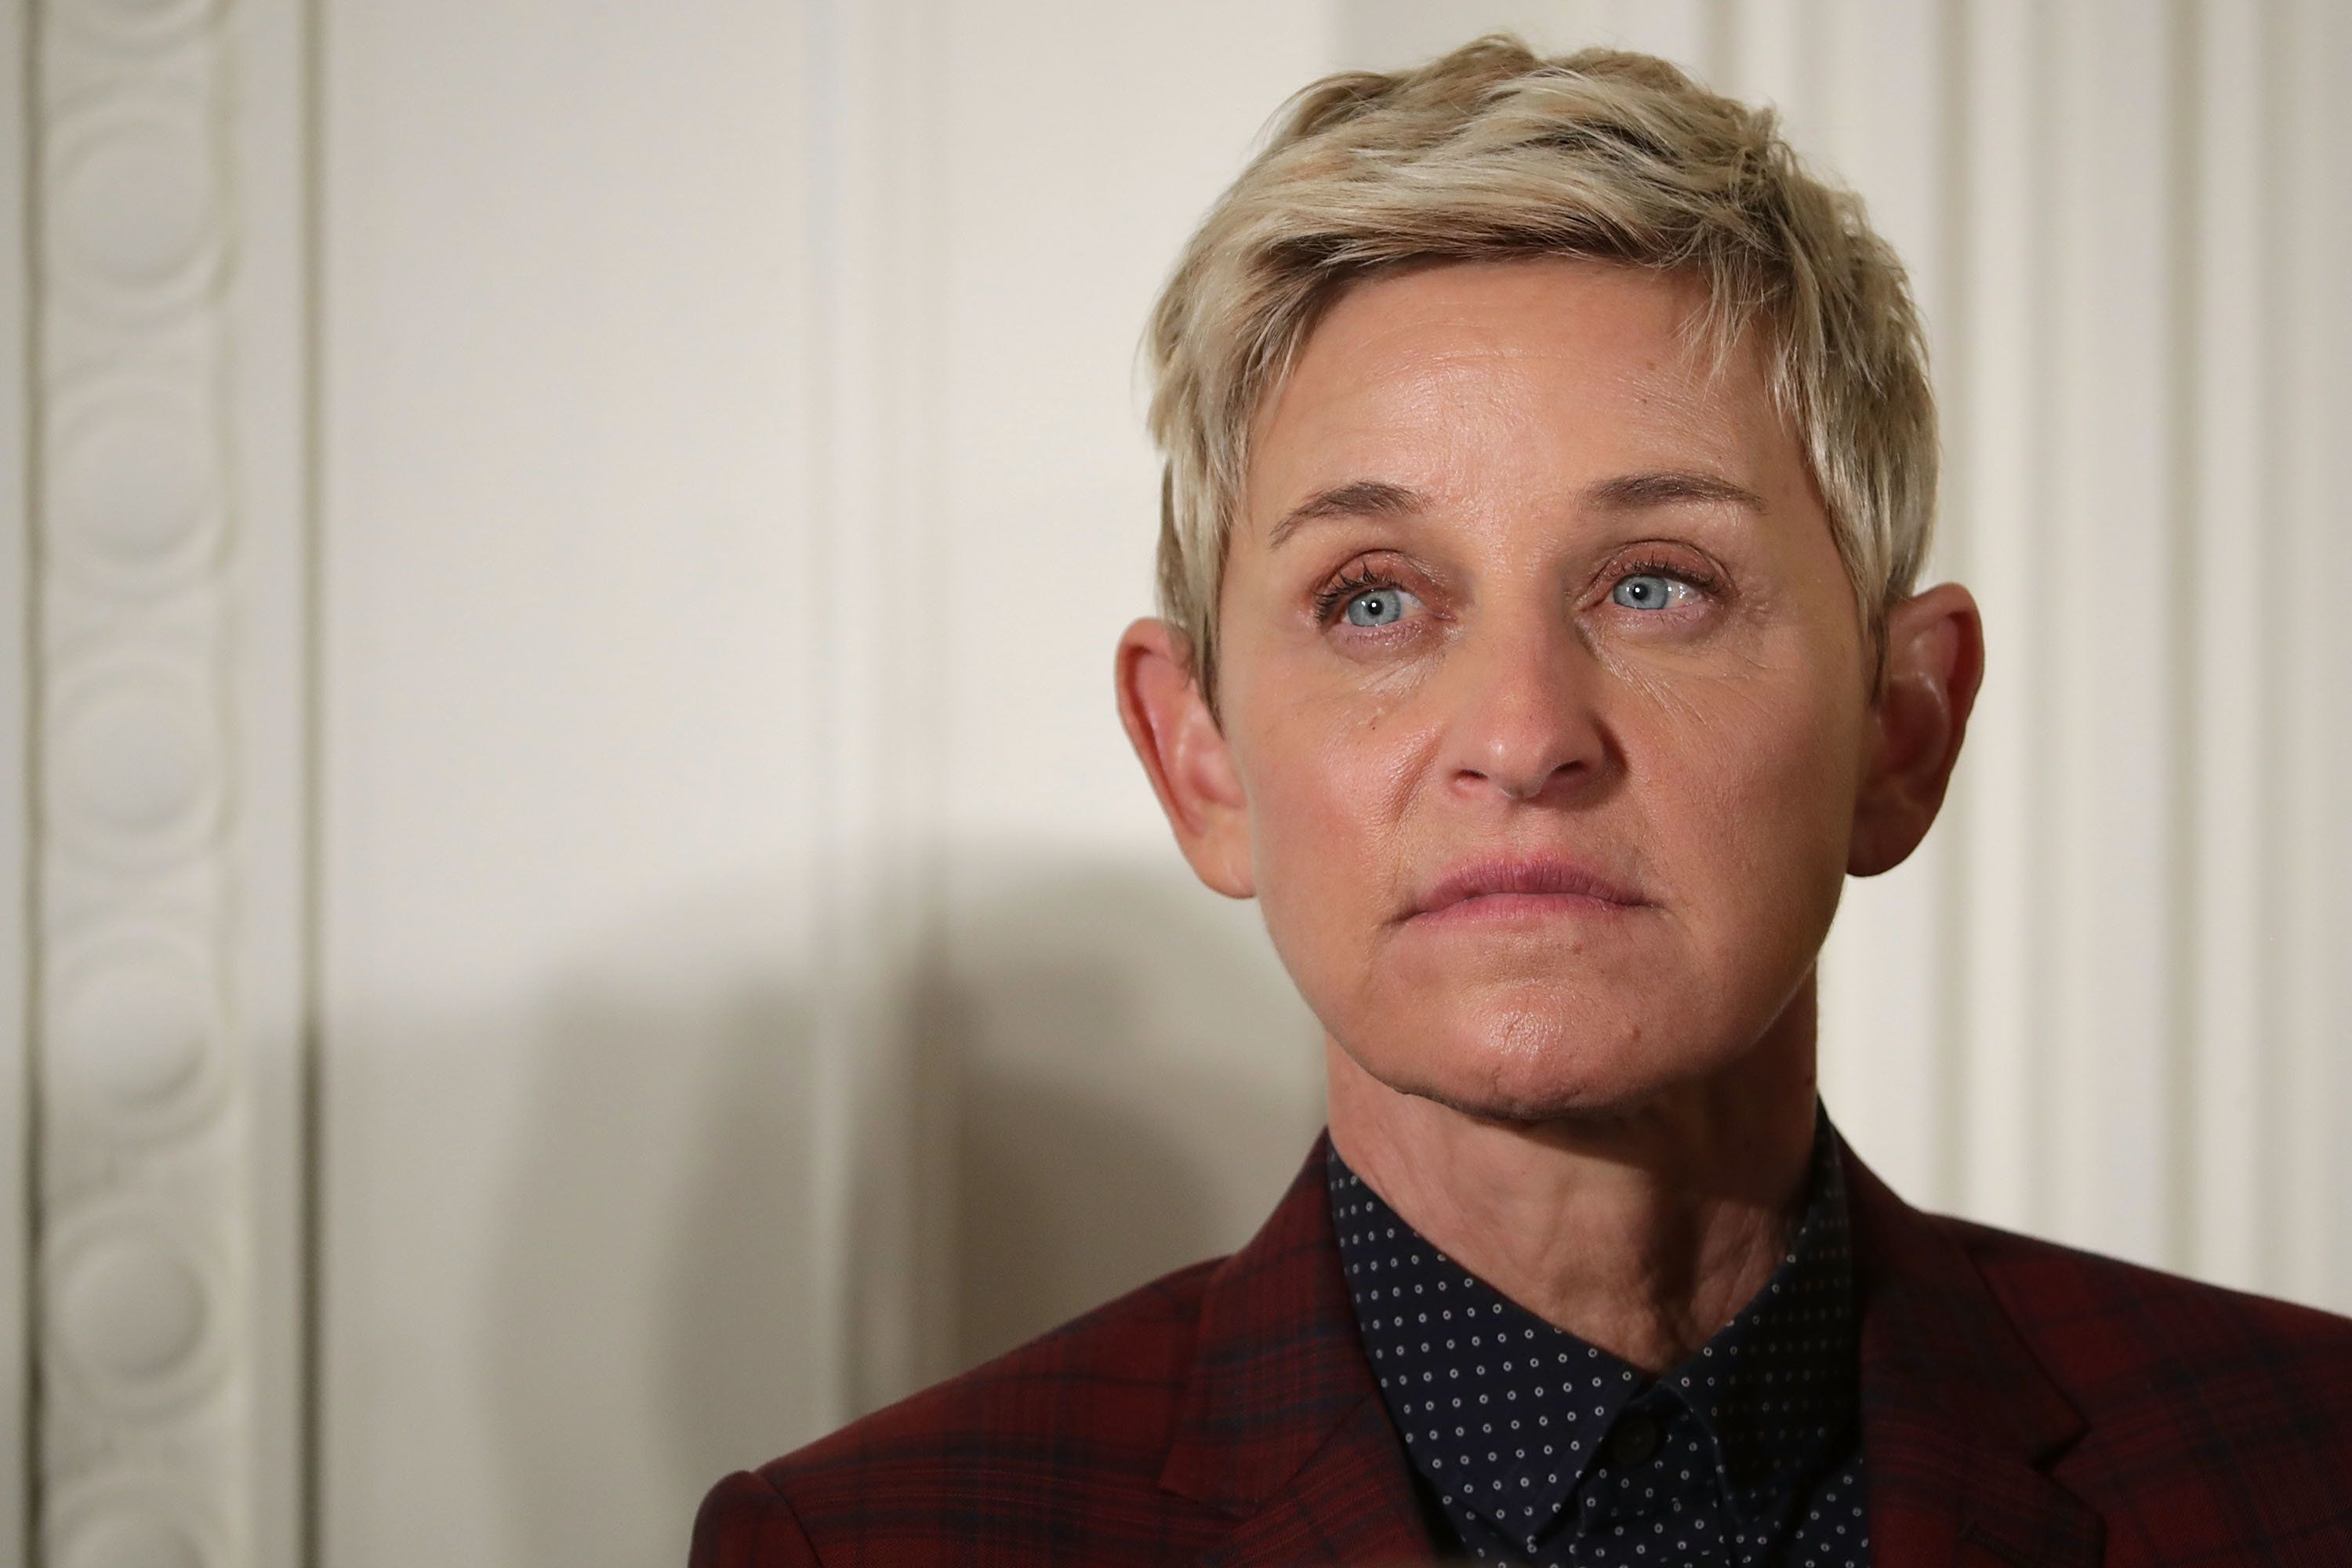 Ellen Opens Up About Being Bullied In